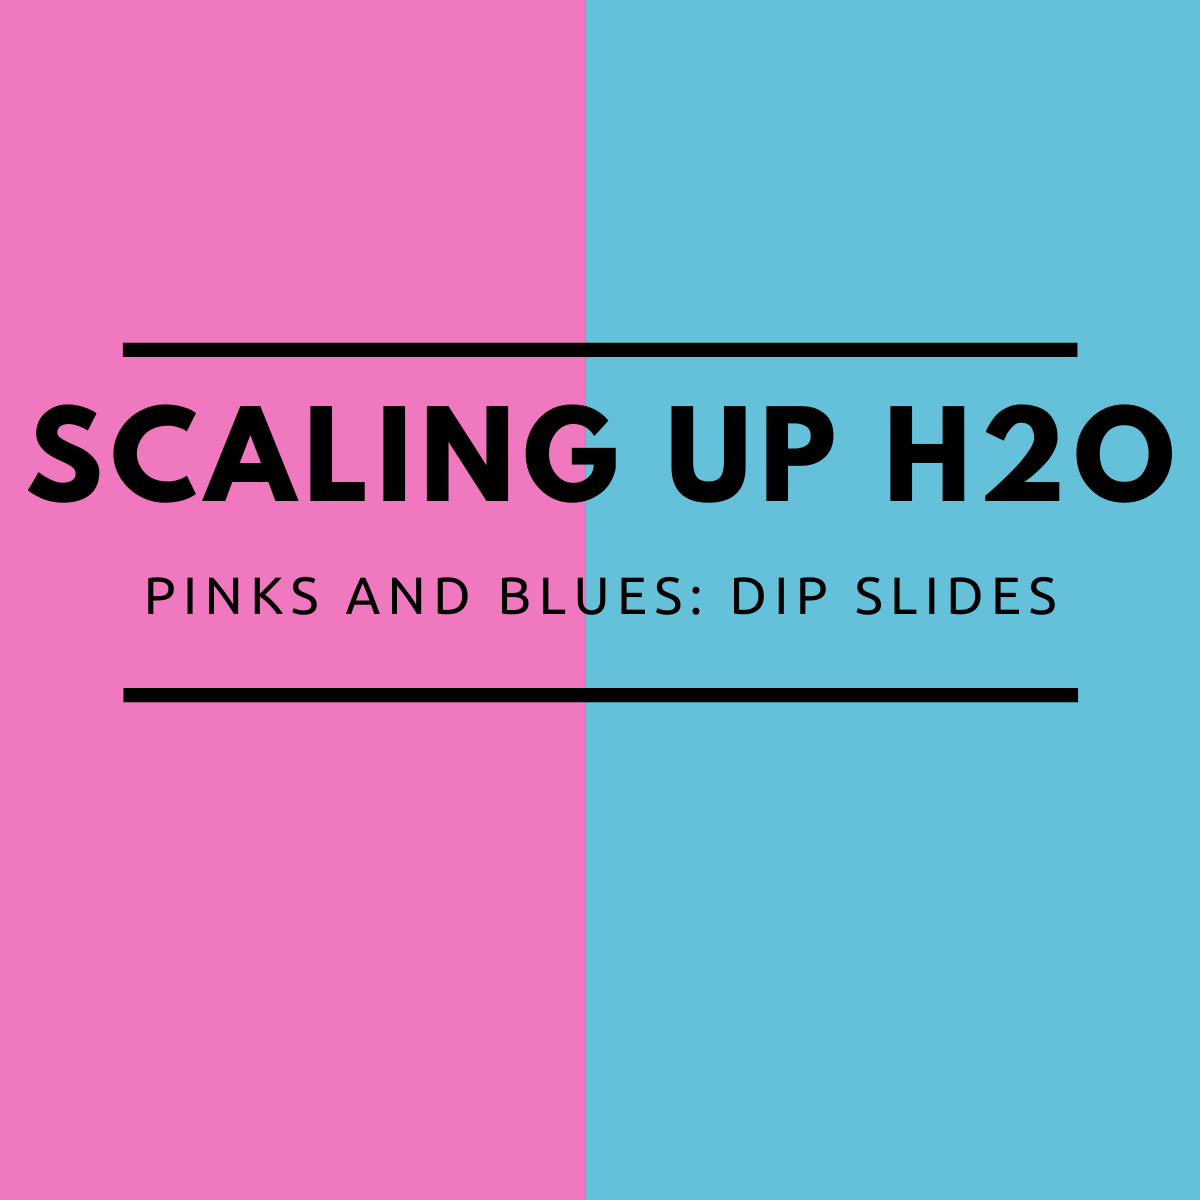 pinks and blues dip slides